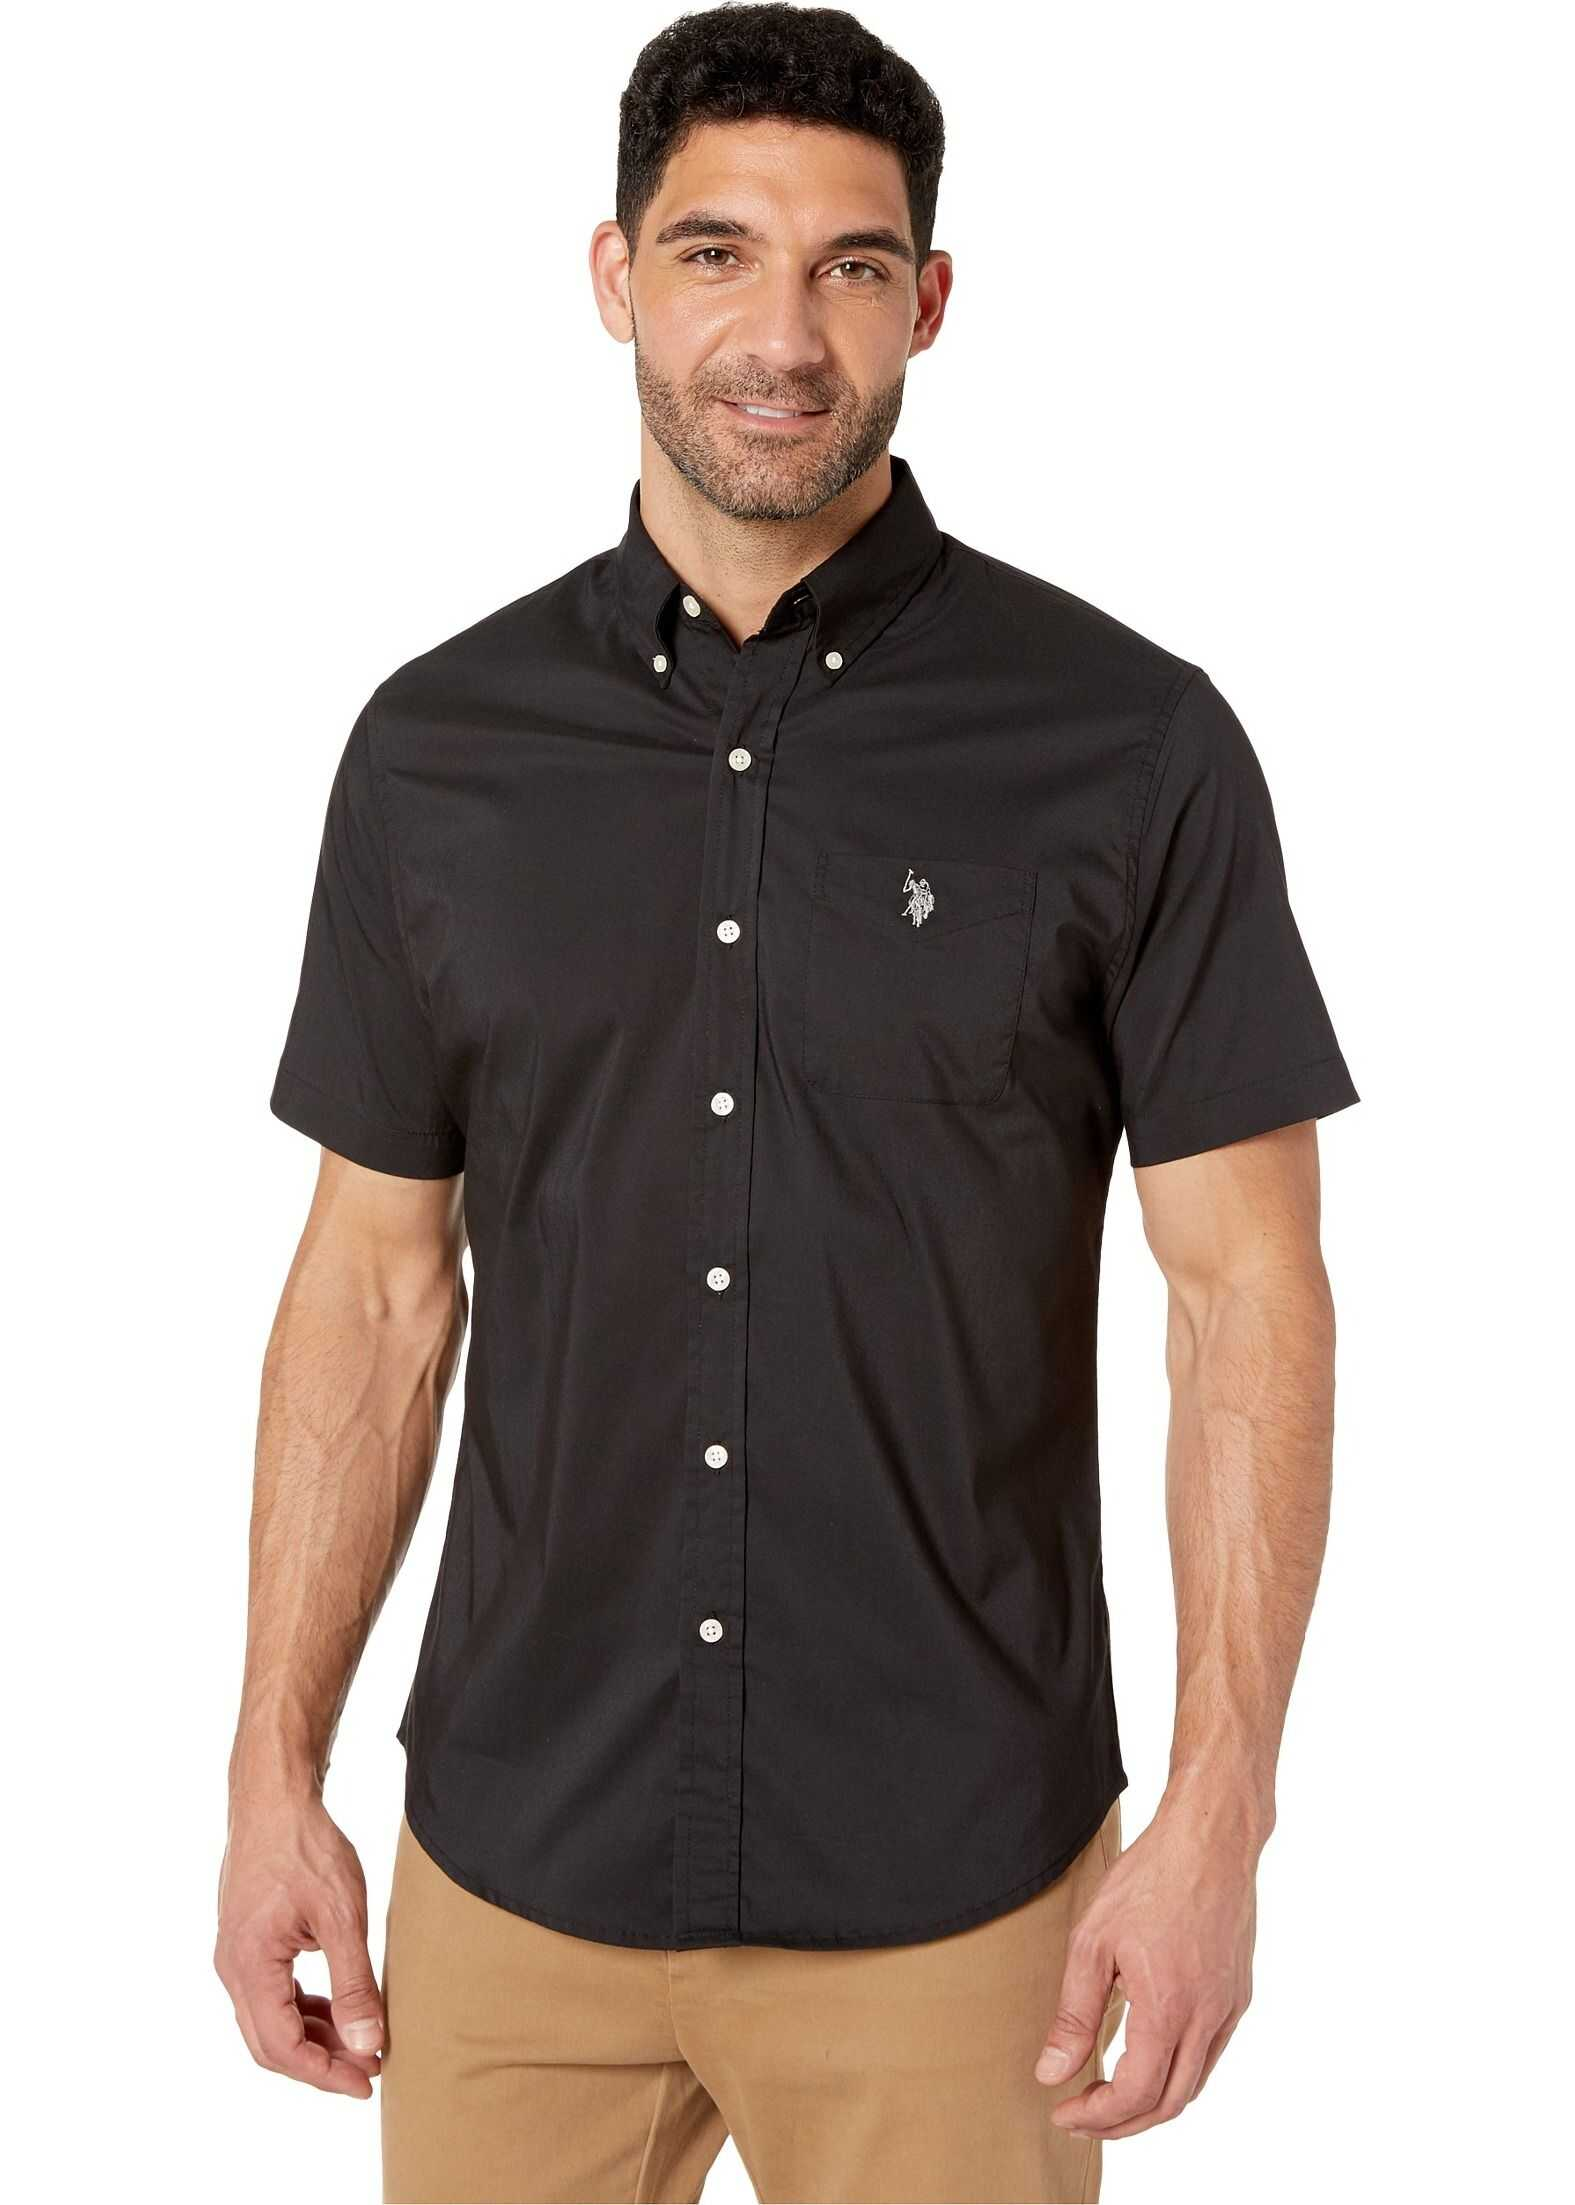 U.S. POLO ASSN. Solid Stretch Button Down Black